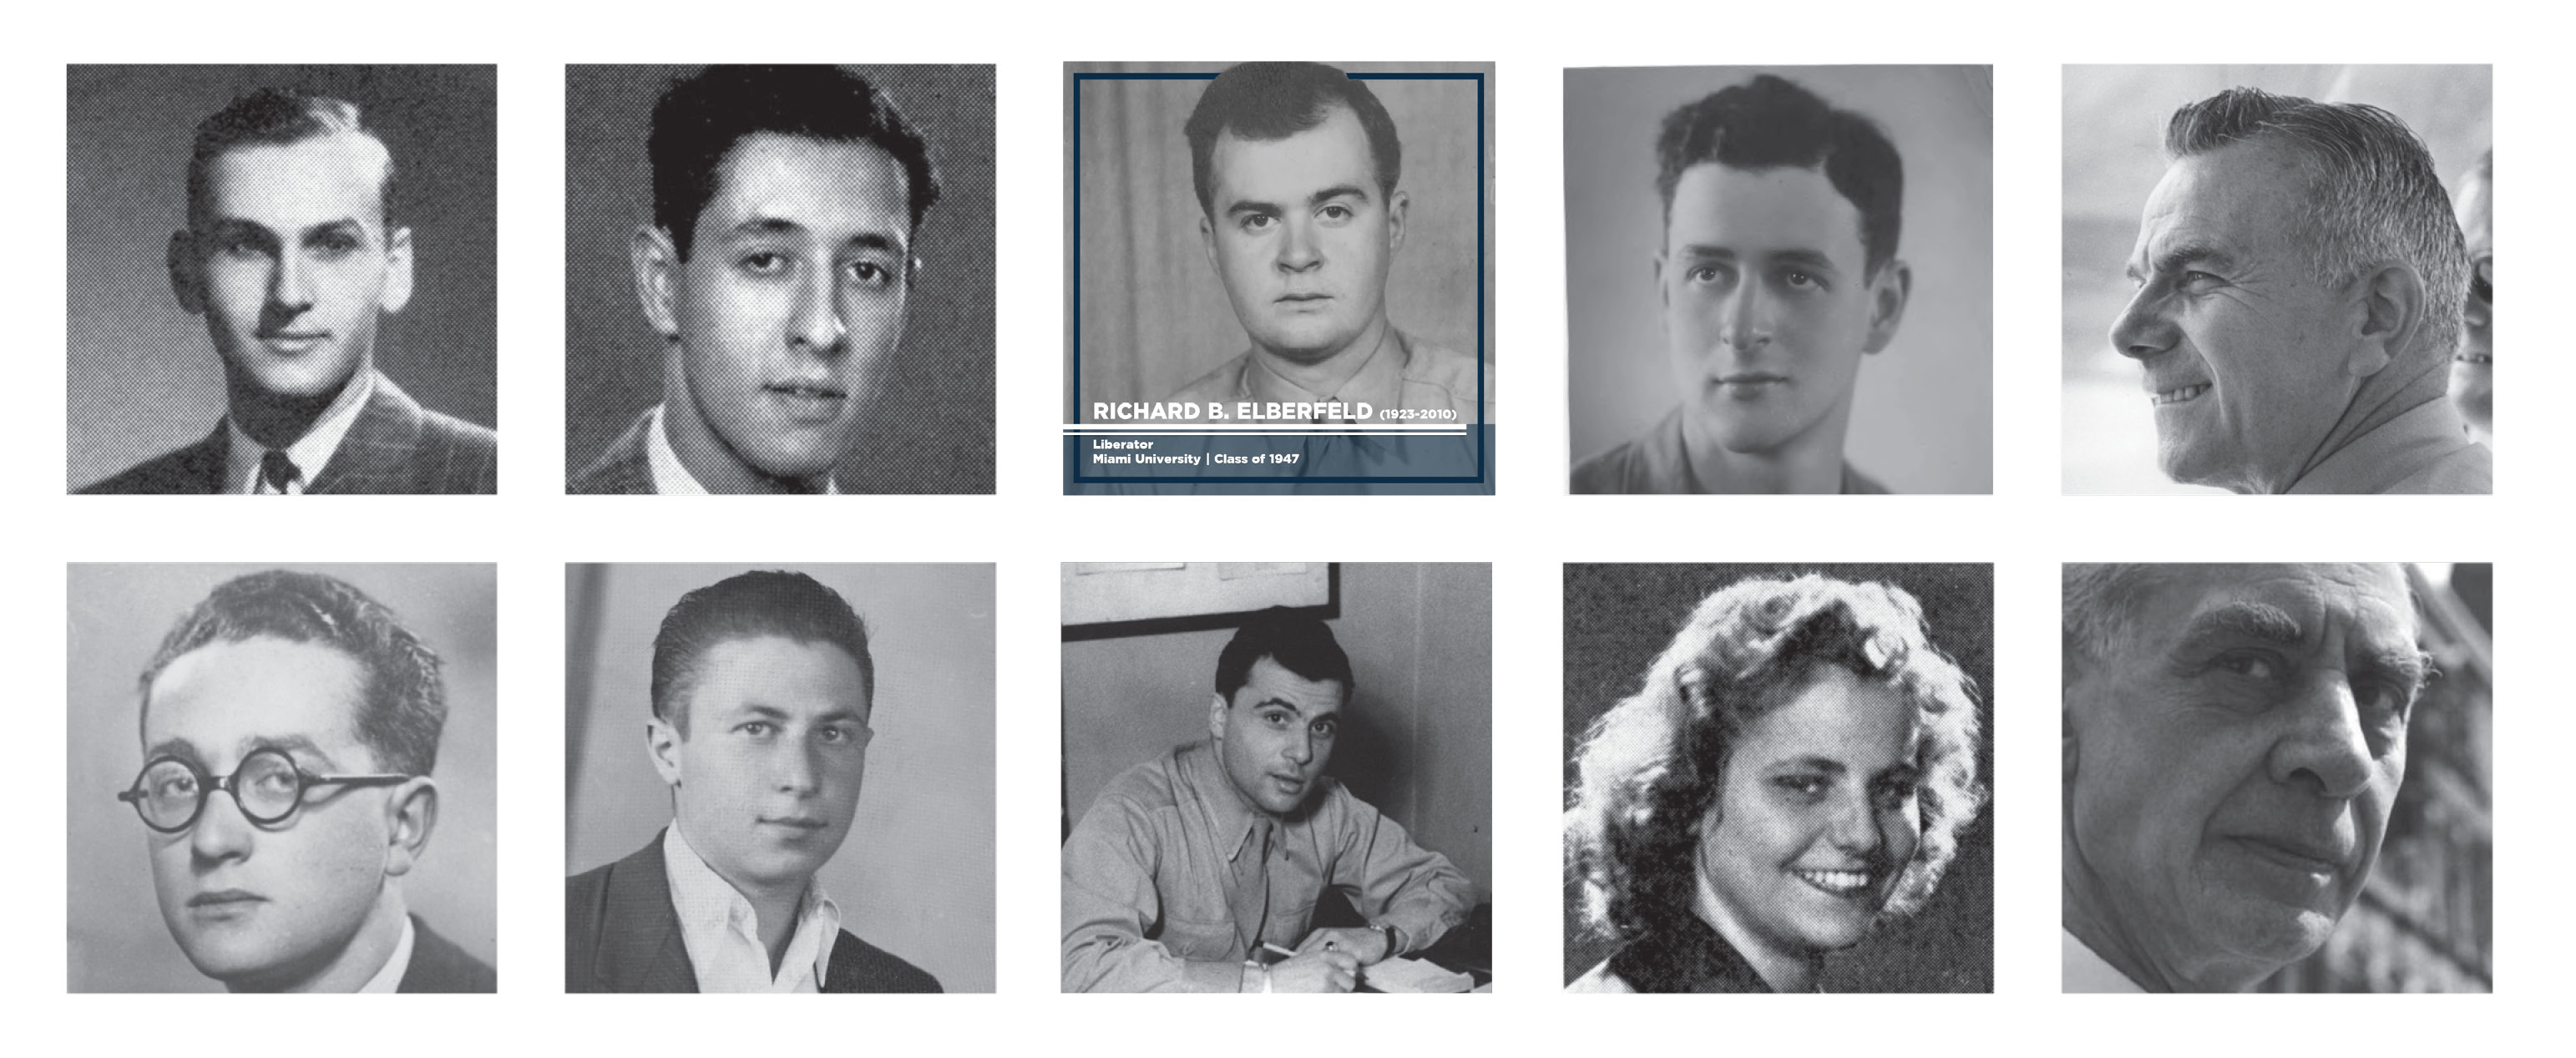 Nine black and white portraits of the alumni and faculty featured in the exhibition Bearing Witness. Richard Elberfeld's image is outlined in blue with the text -   Richard Bradford Elberfeld (1923—2010) Liberator B.S. in Business Administration Miami University, Class of 1947